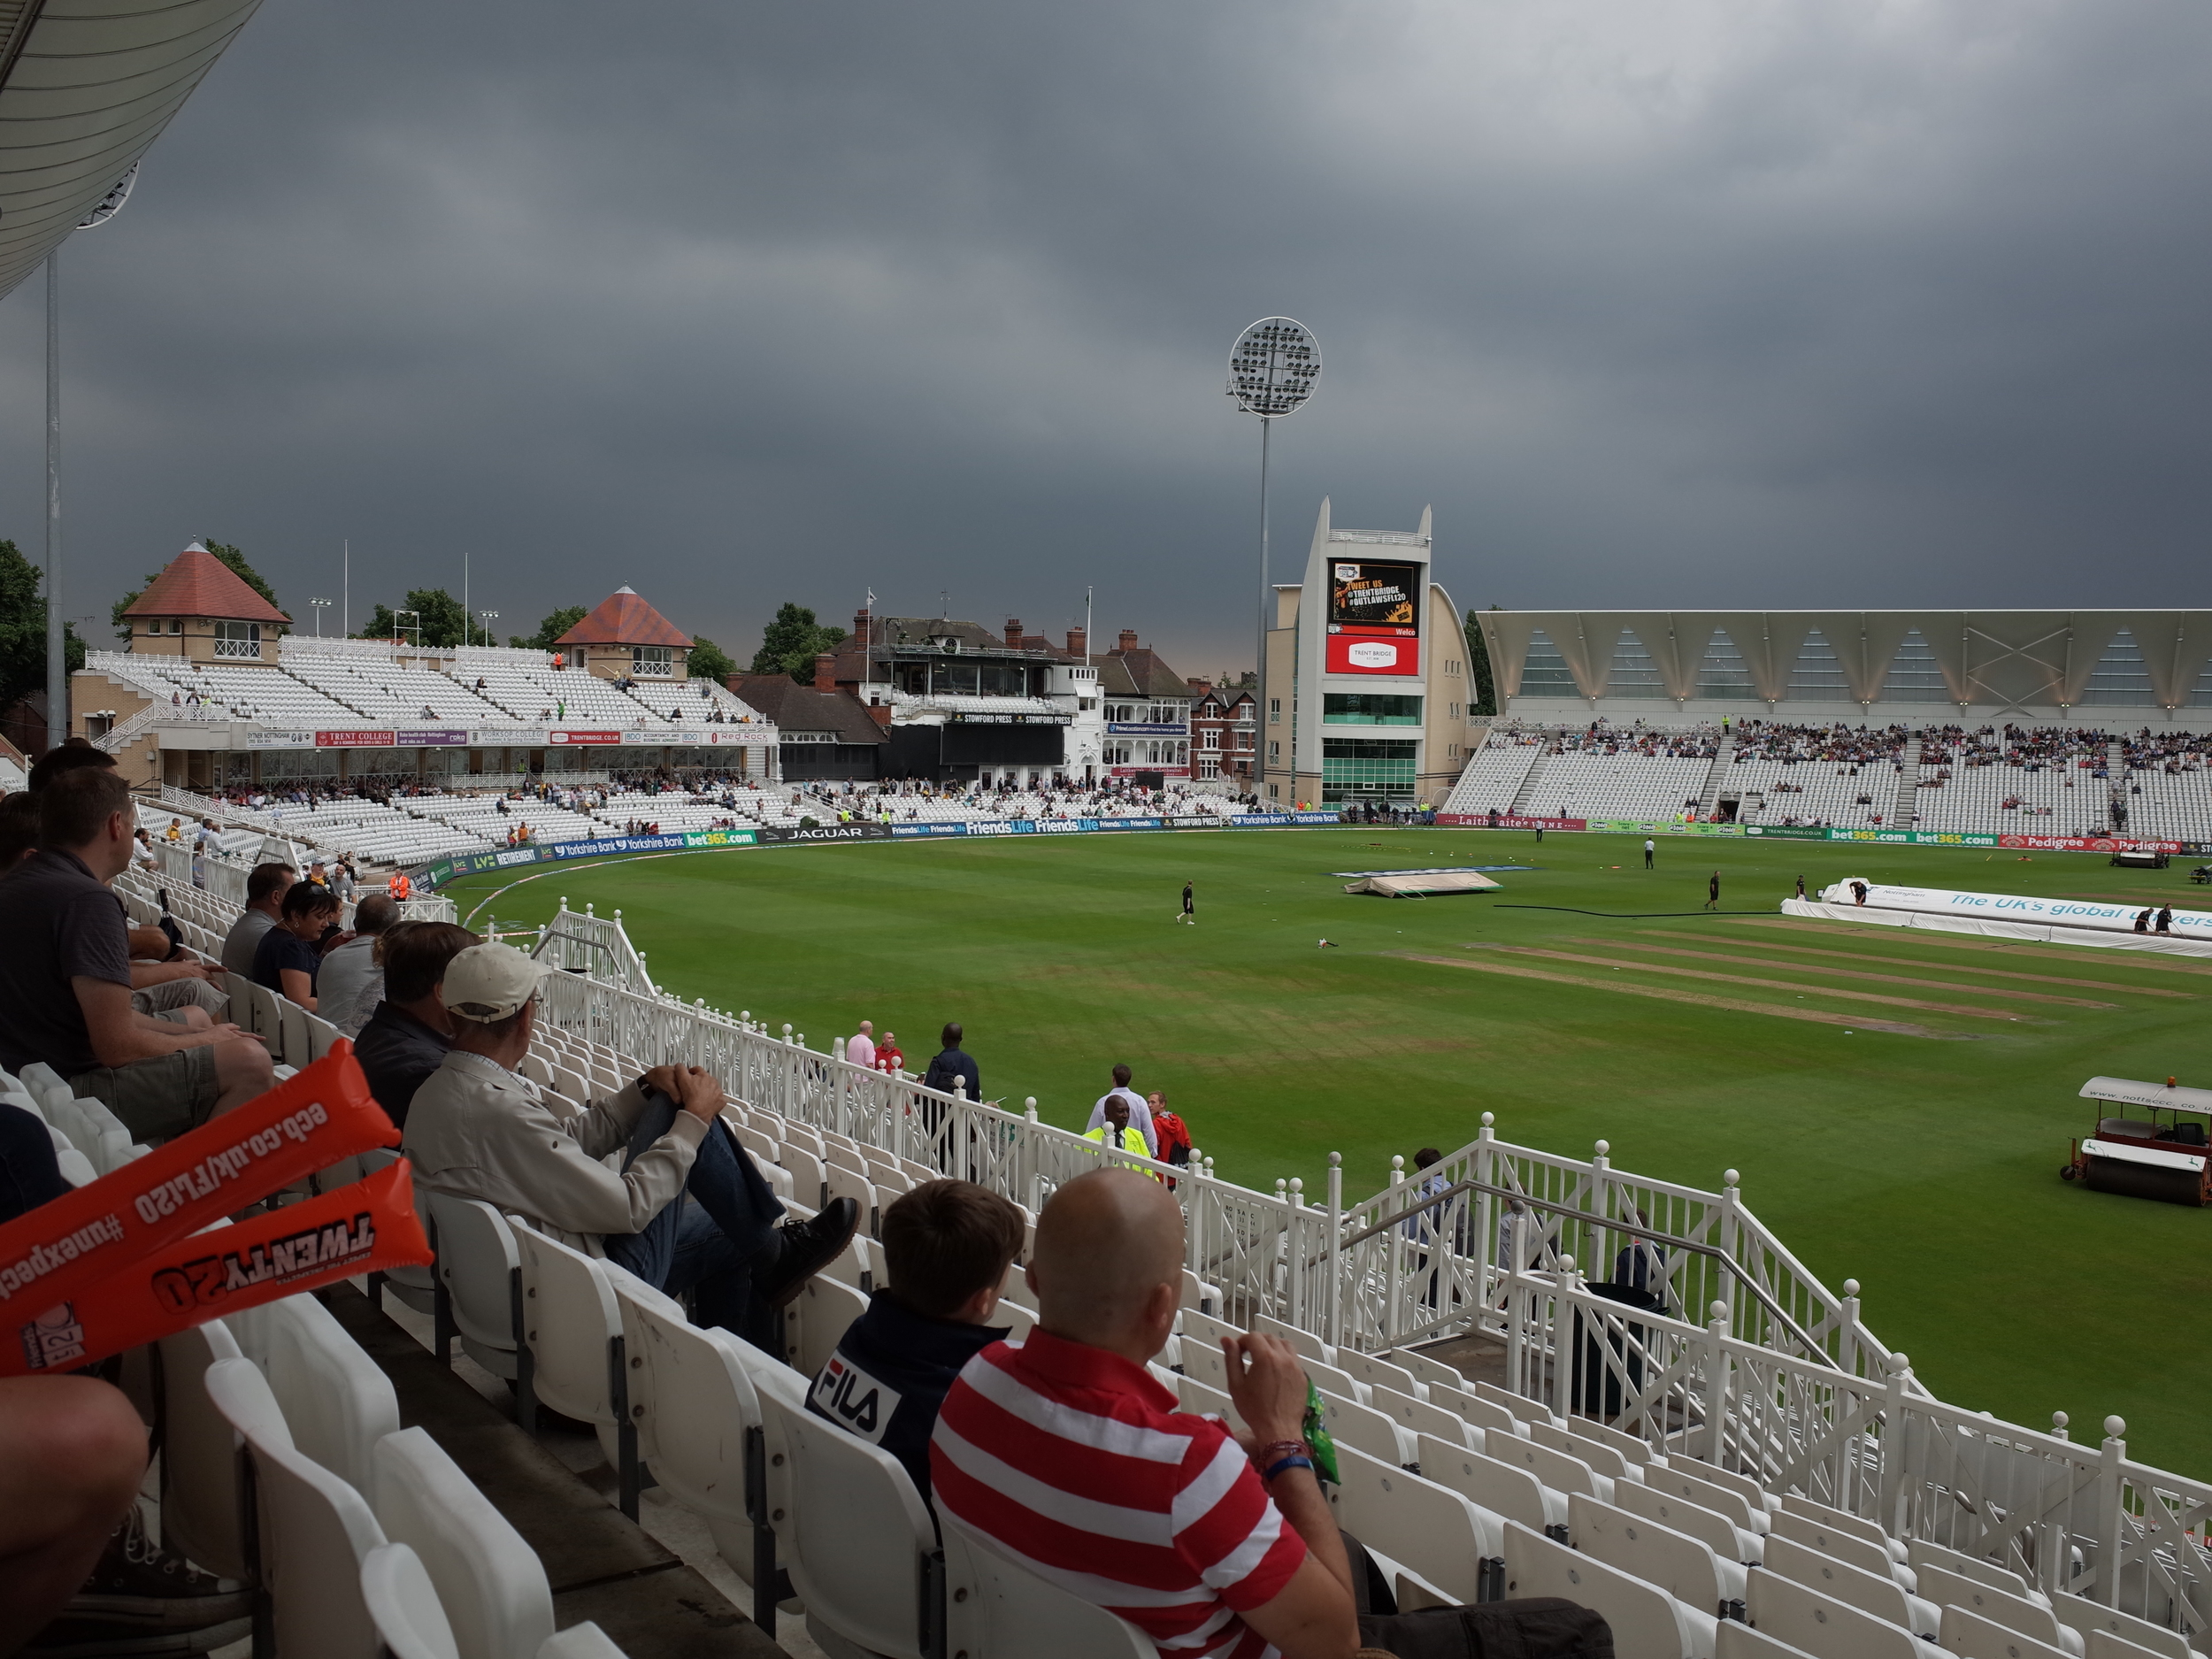 Trent Bridge, Nottingham, England.   Derbyshire give Notts a cricketing lesson in the gathering gloom of a stormy night. Ricoh GR 1/125sec  f5.6 @ ISO100